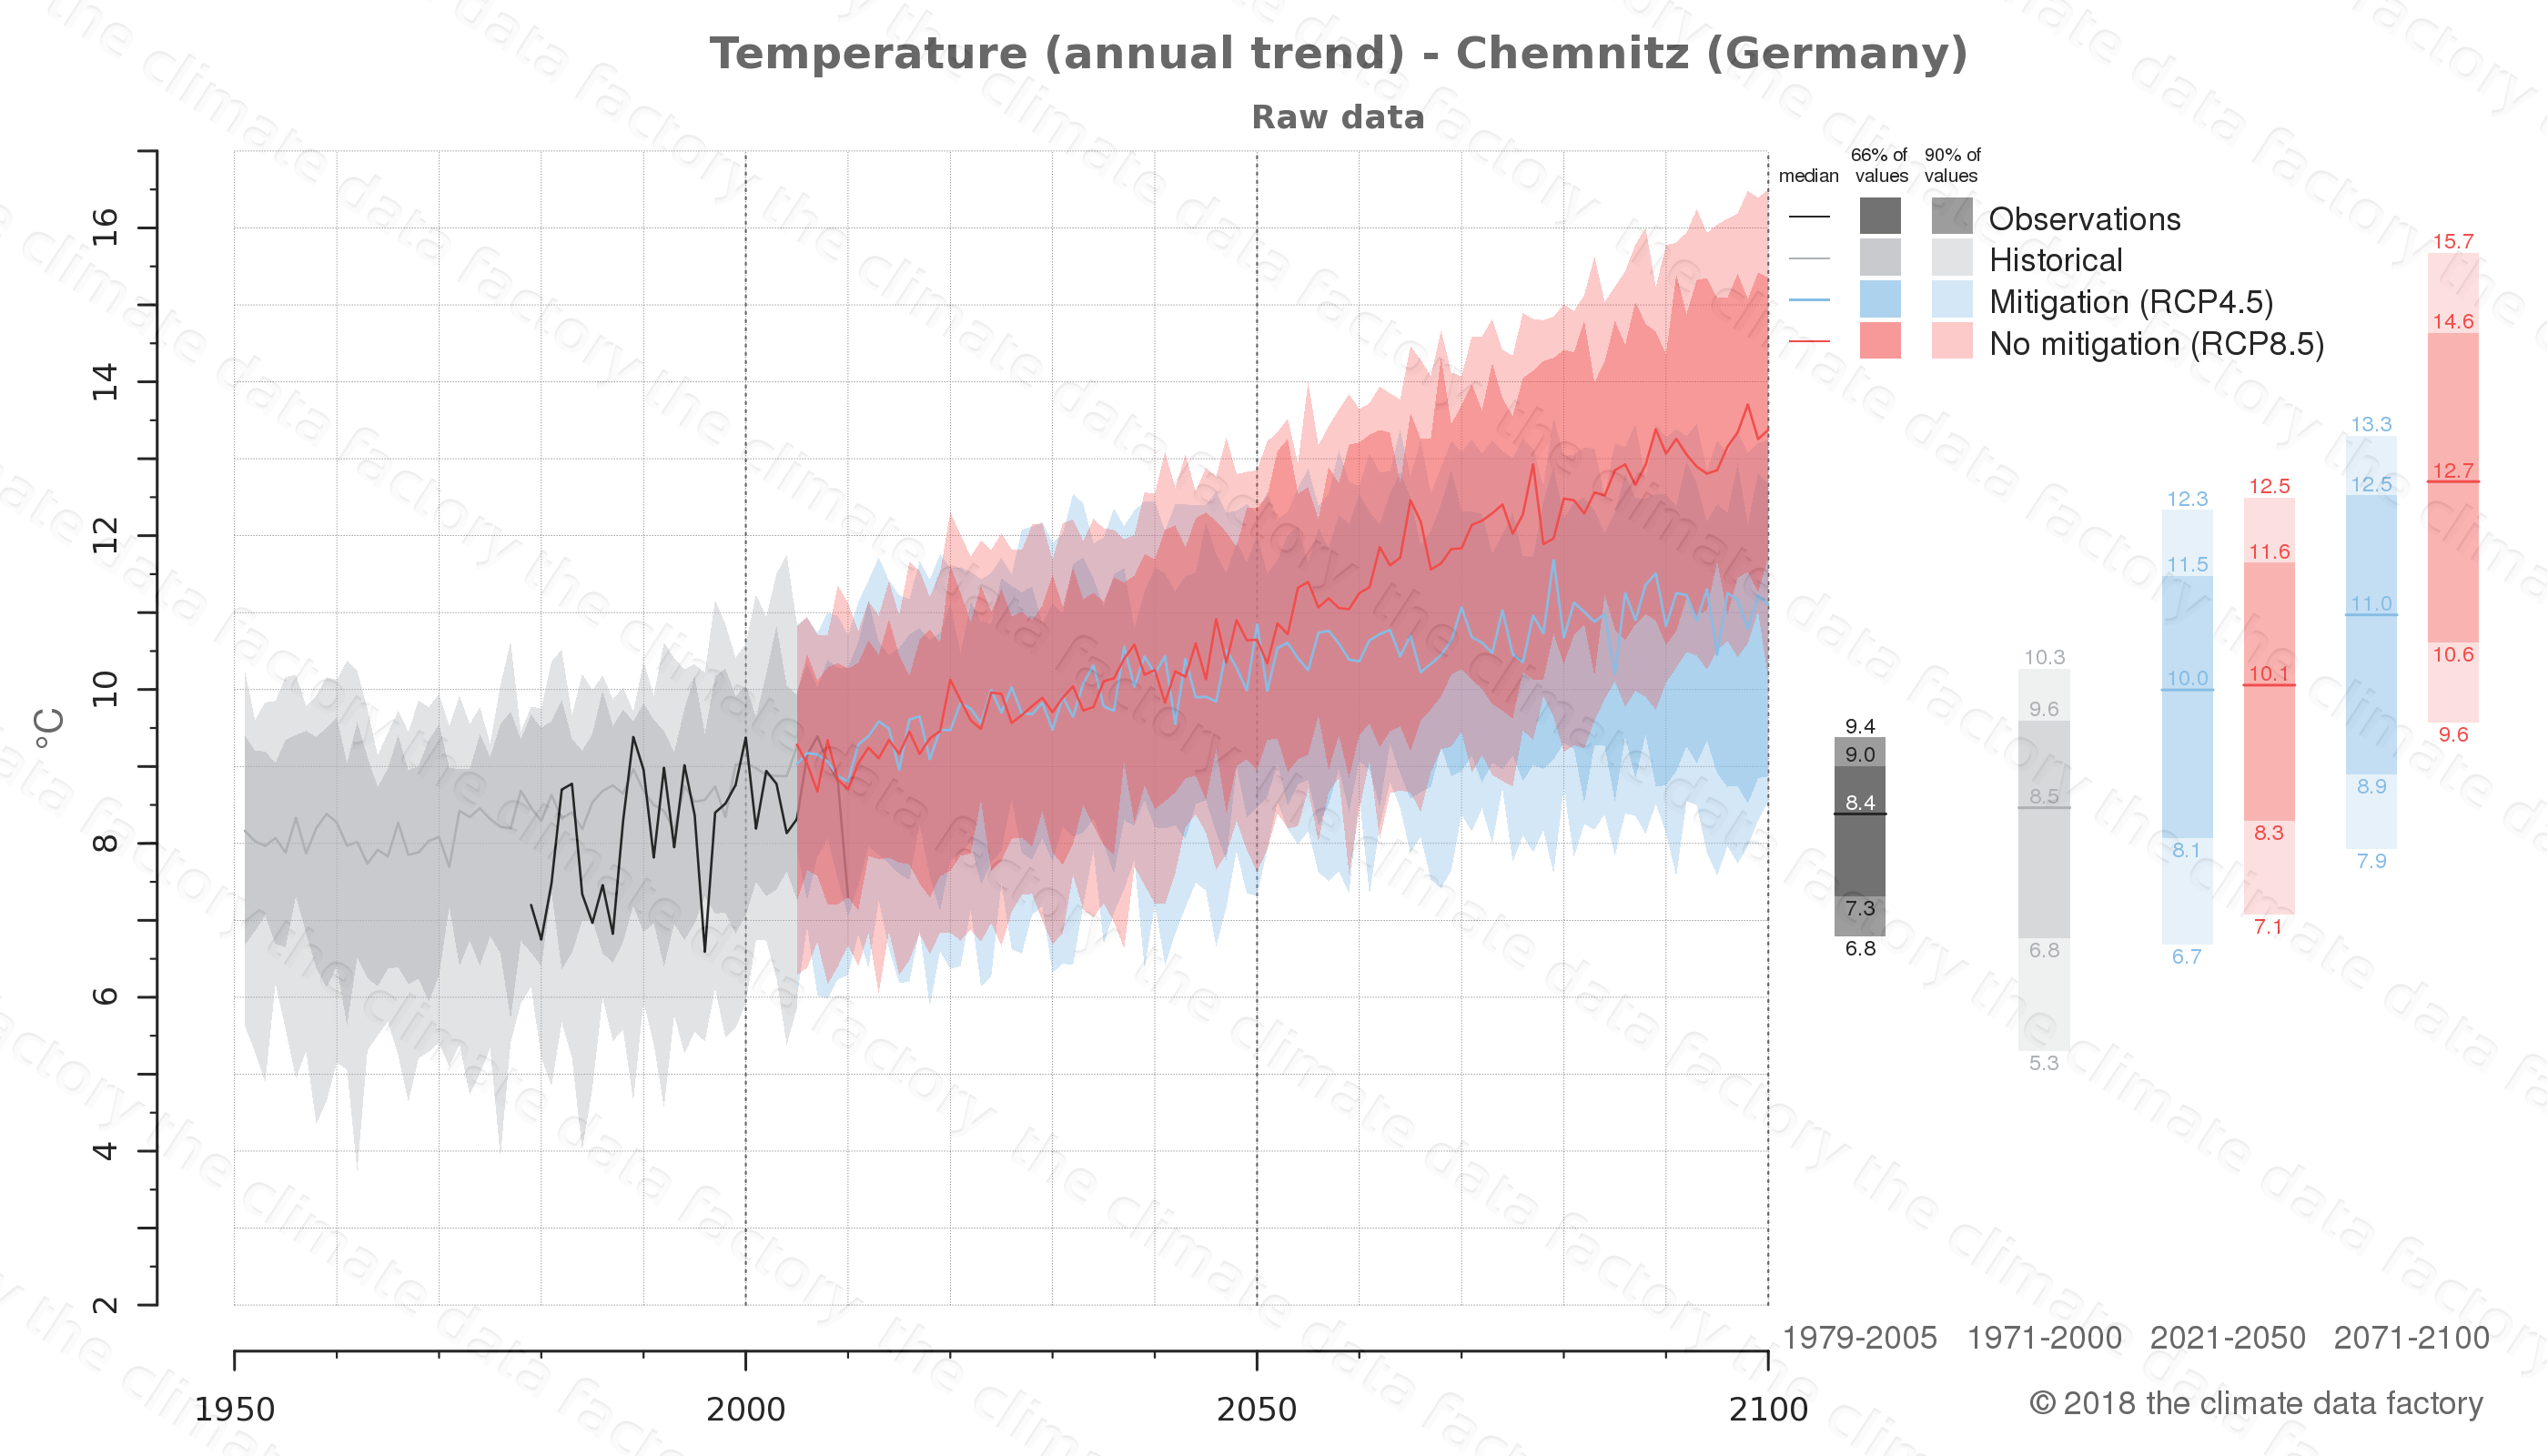 climate change data policy adaptation climate graph city data temperature chemnitz germany